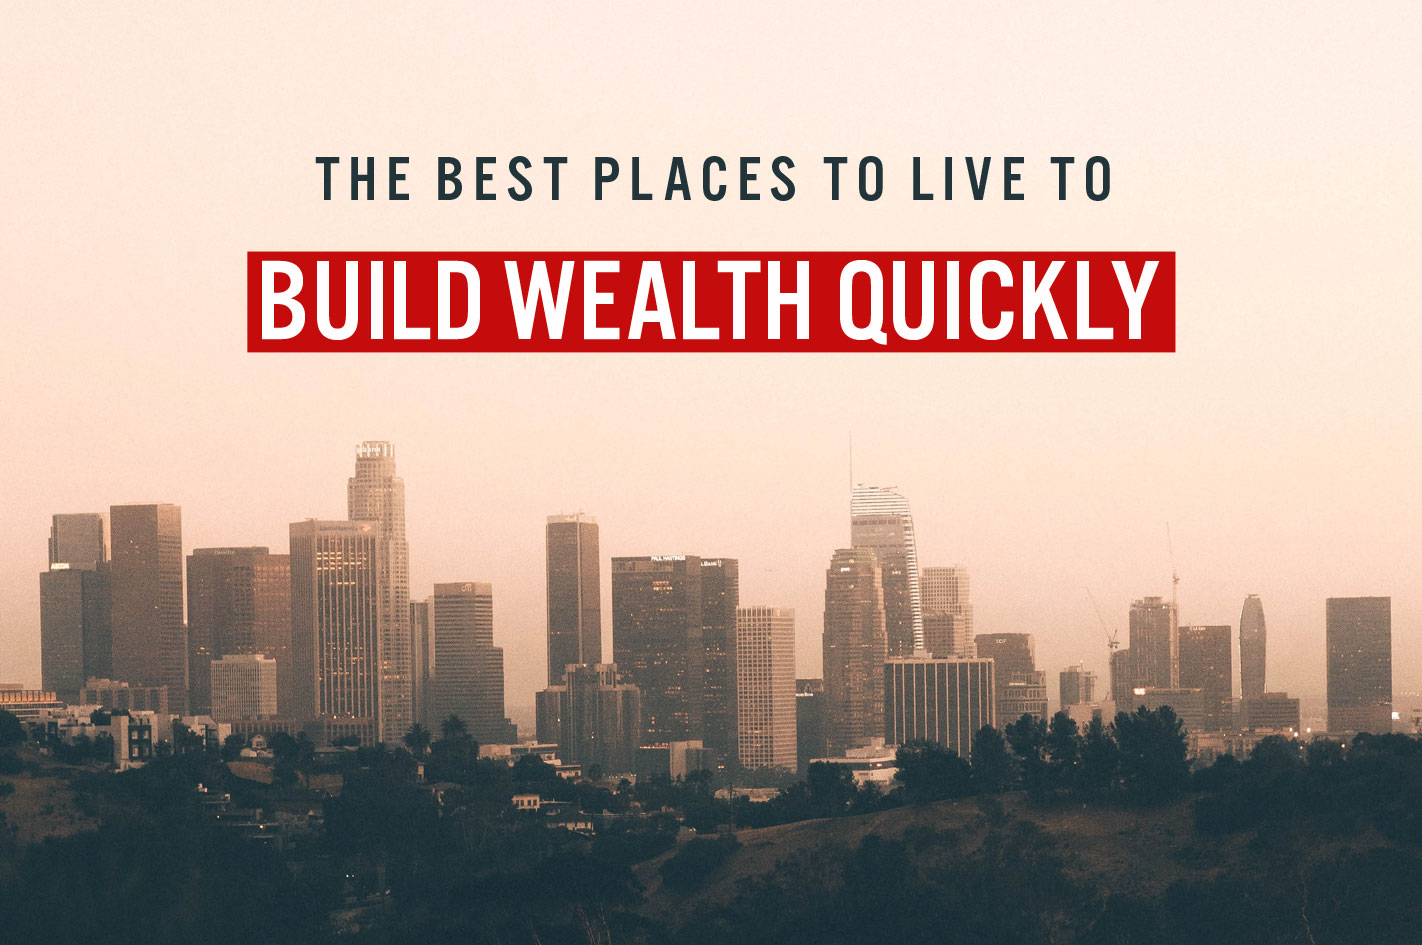 The best place to live to build wealth quickly, for every occupation